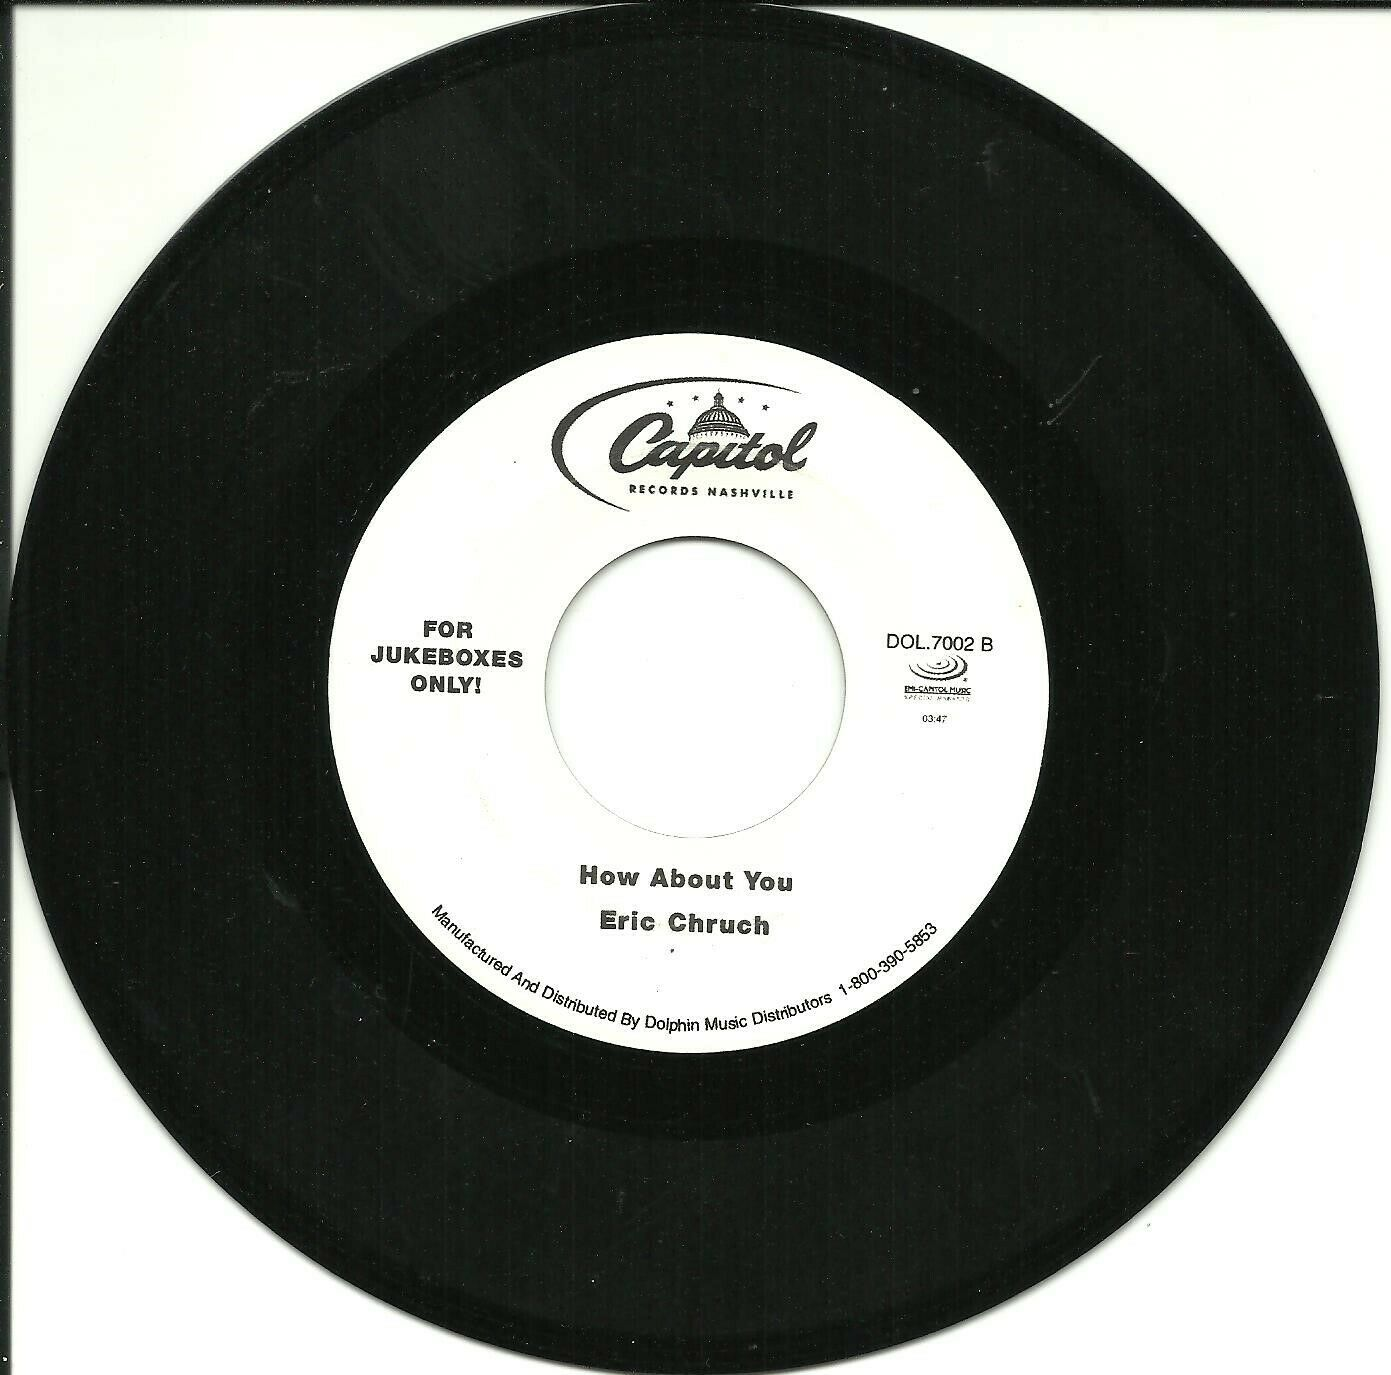 """Eric Church   """"How About You"""" - Hard-to-Find Jukebox 45 (b/w Chris Cagle hit)"""